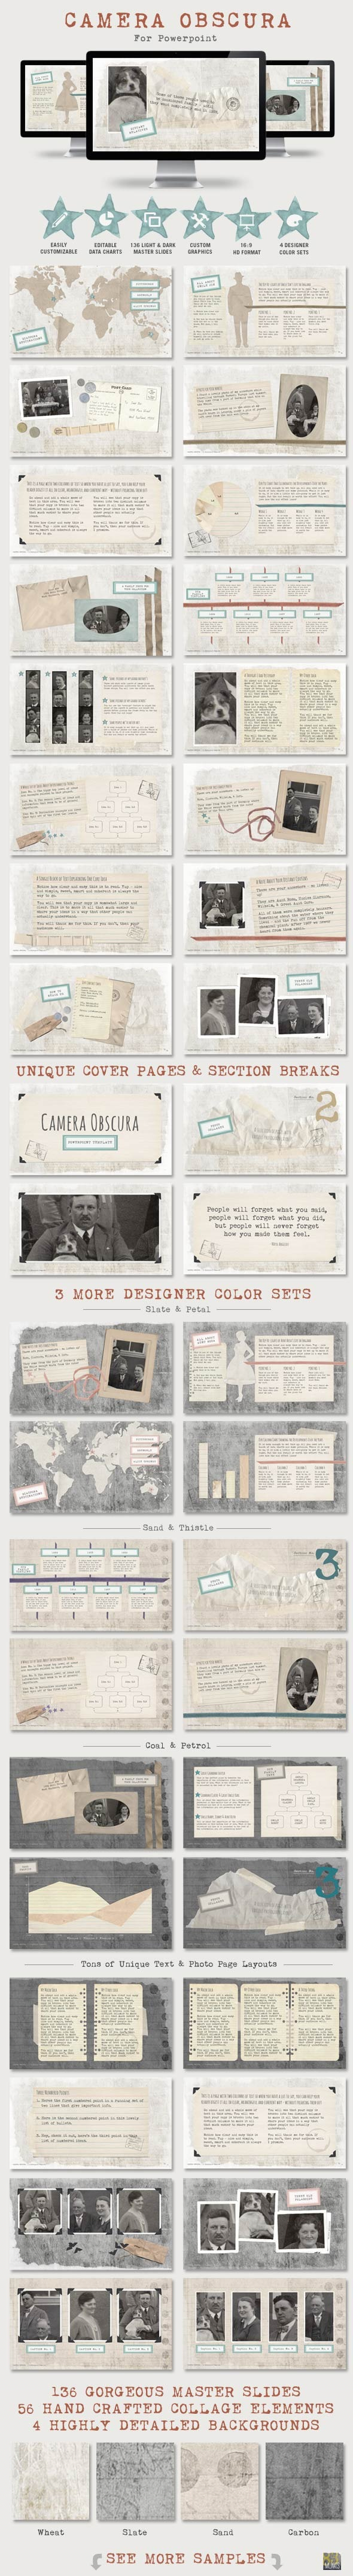 Camera Obscura Powerpoint Presentation Template - Creative PowerPoint Templates